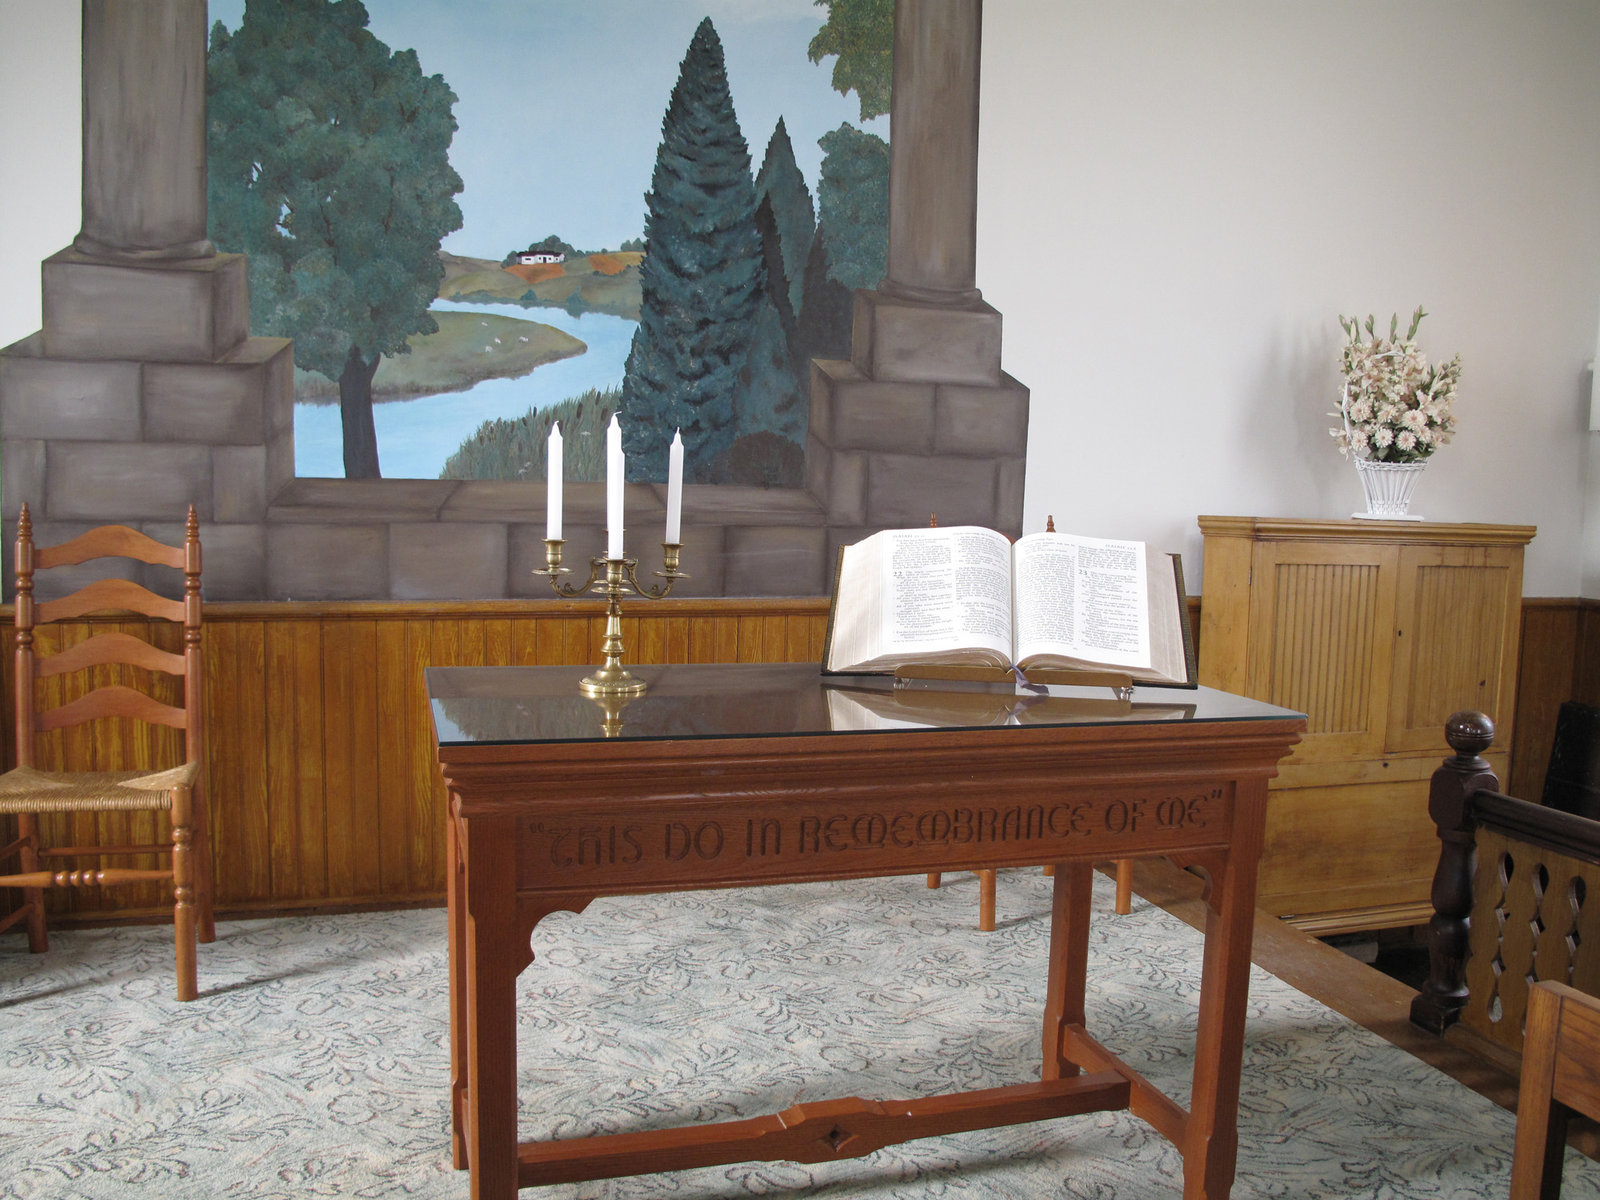 full image view: communion table, bible stand, and candelabra